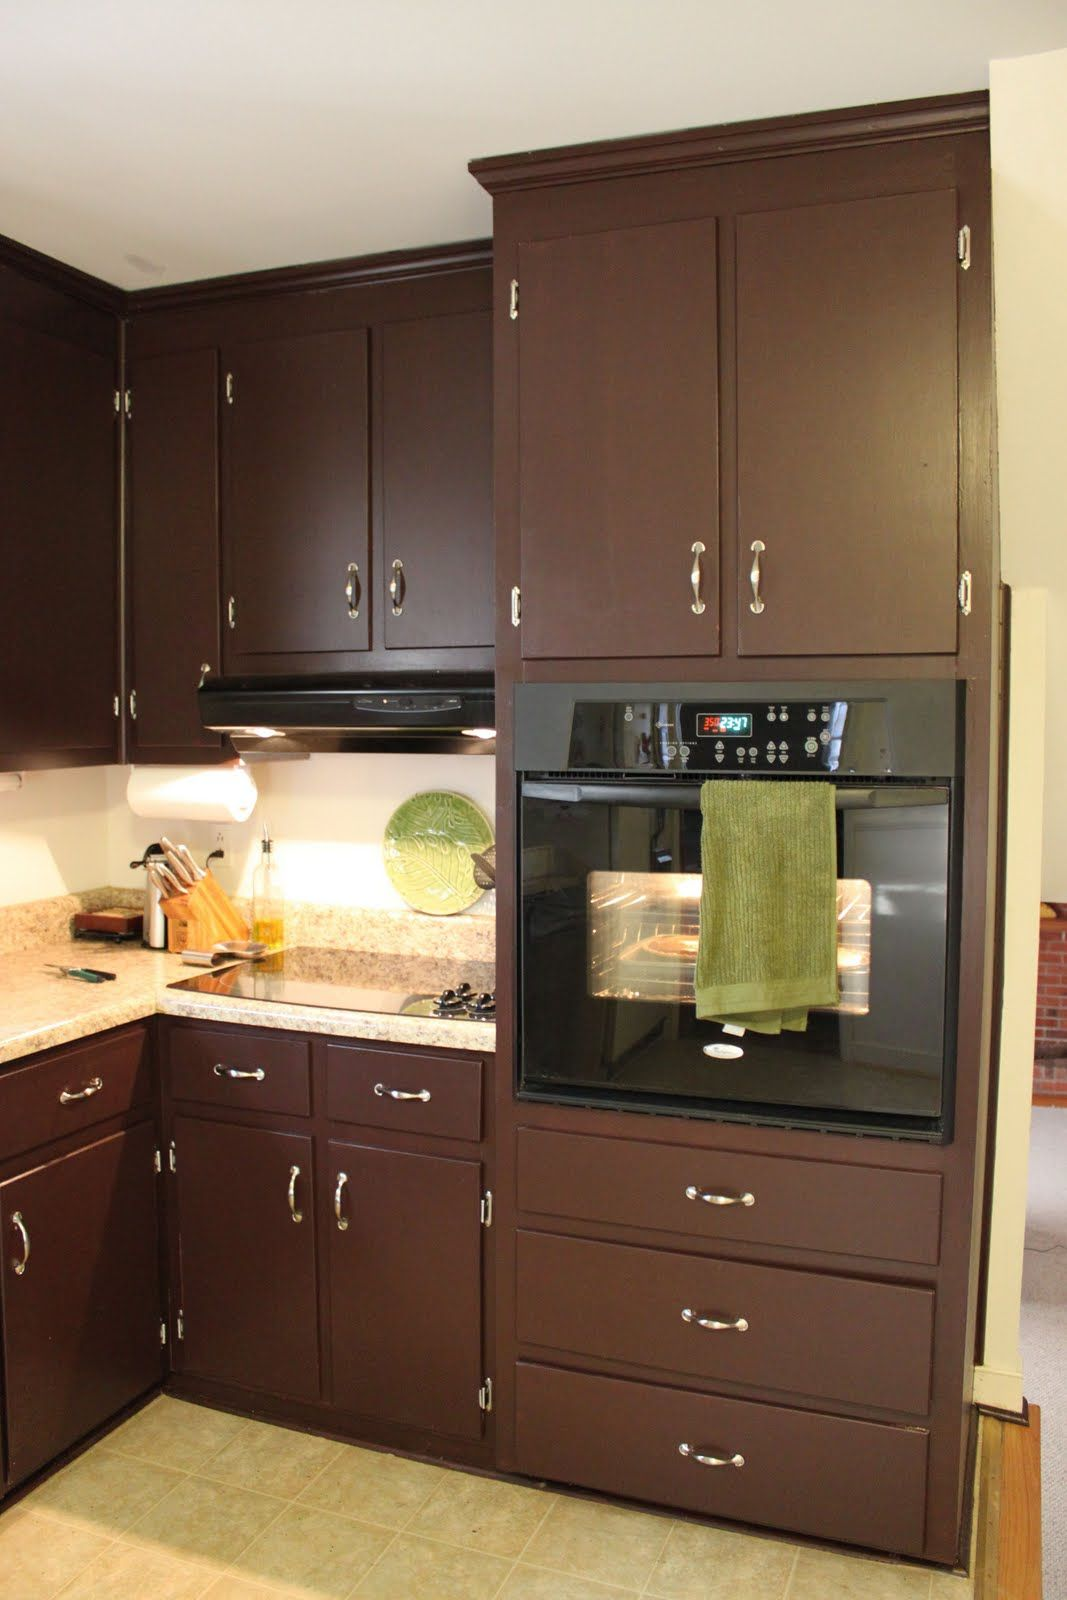 Best Brown Painted Kitchen Cabinets Silver Hardware Looks 640 x 480